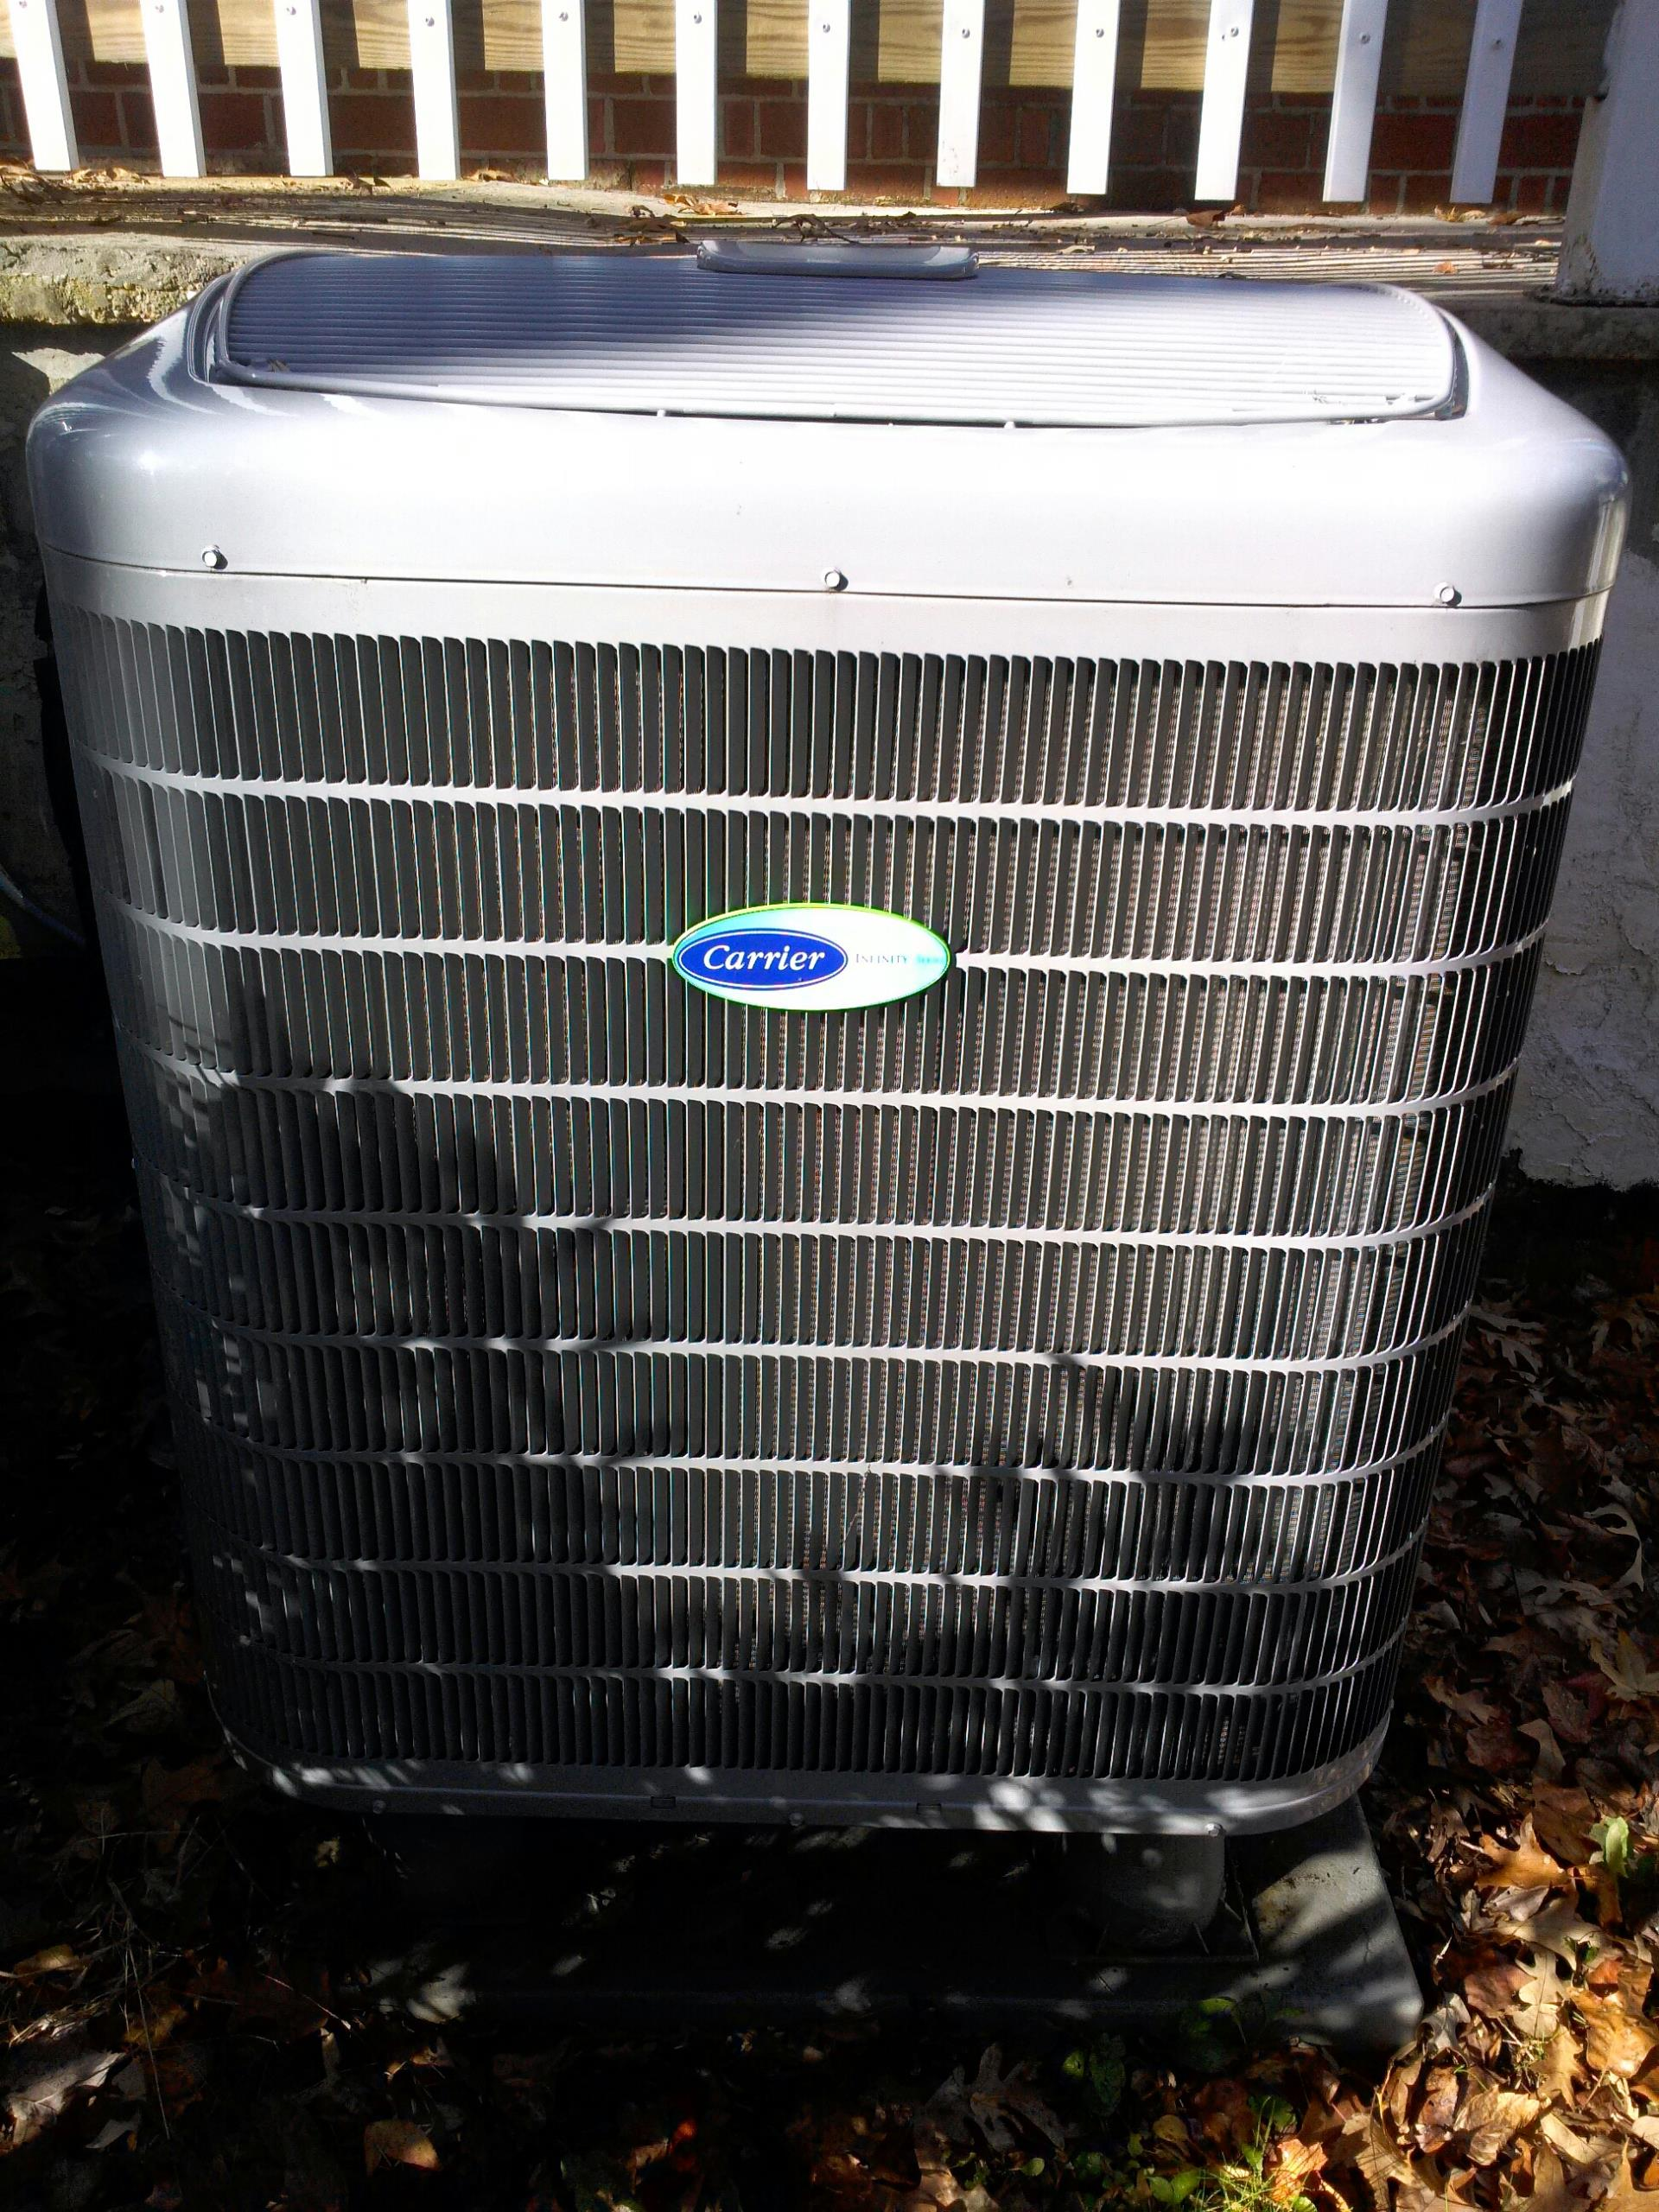 Gambrills, MD - Gambrills Maryland Carrier heat pump heating & air conditioning system repair service call.